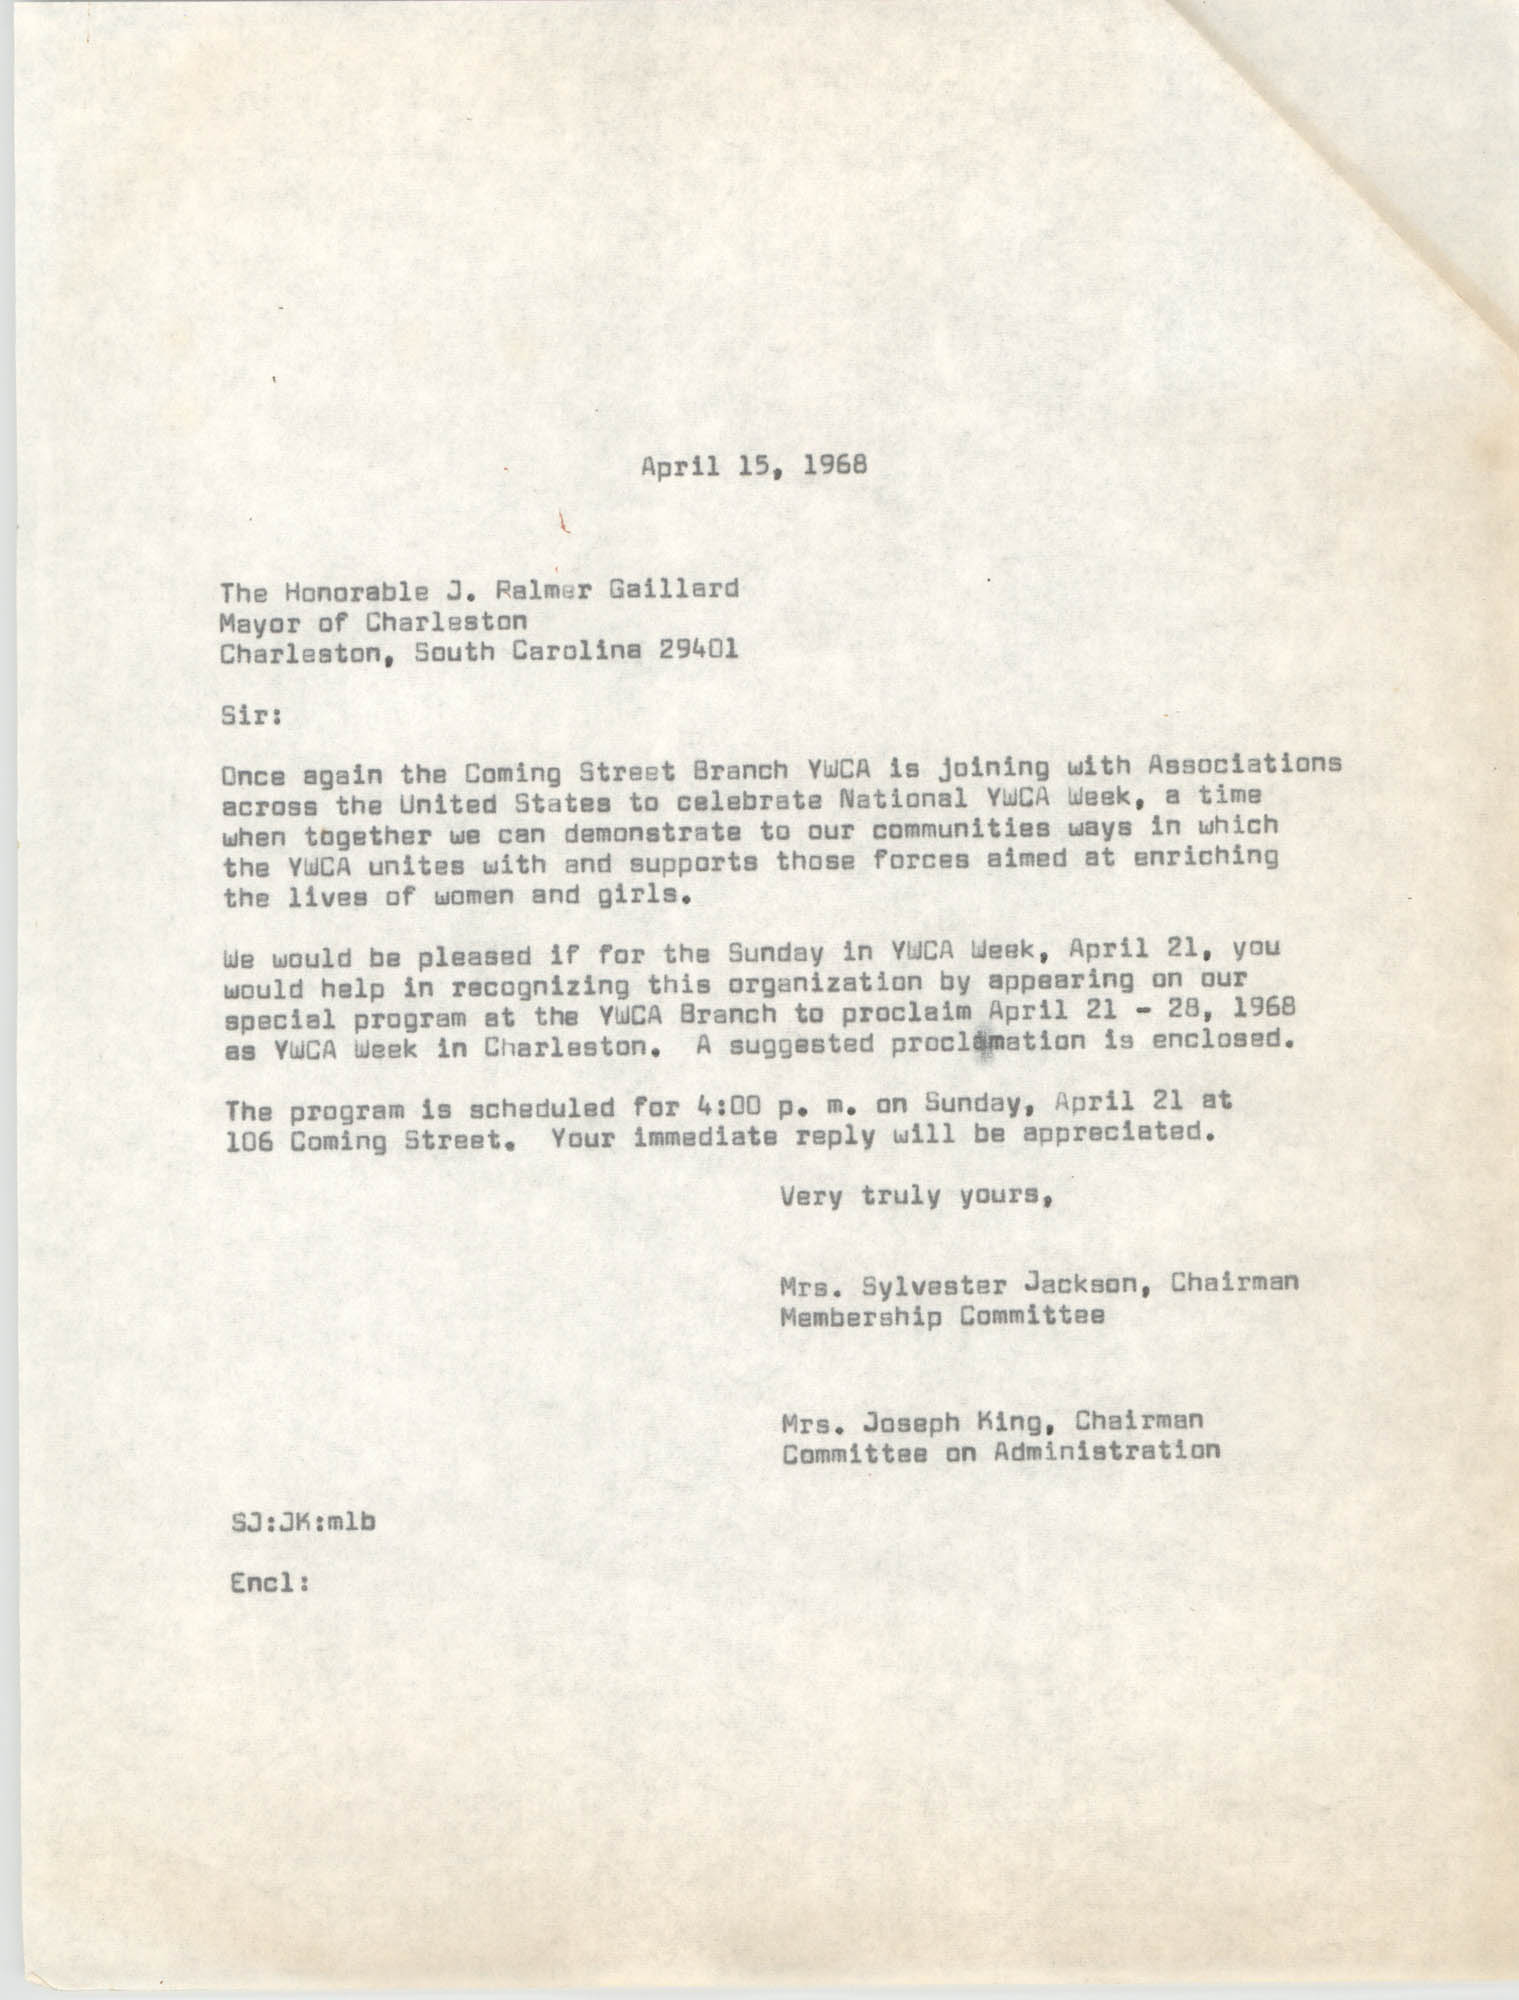 Letter from Mrs. Sylvester Jackson and Mrs. Joseph King to J. Palmer Gaillard, April 15, 1968